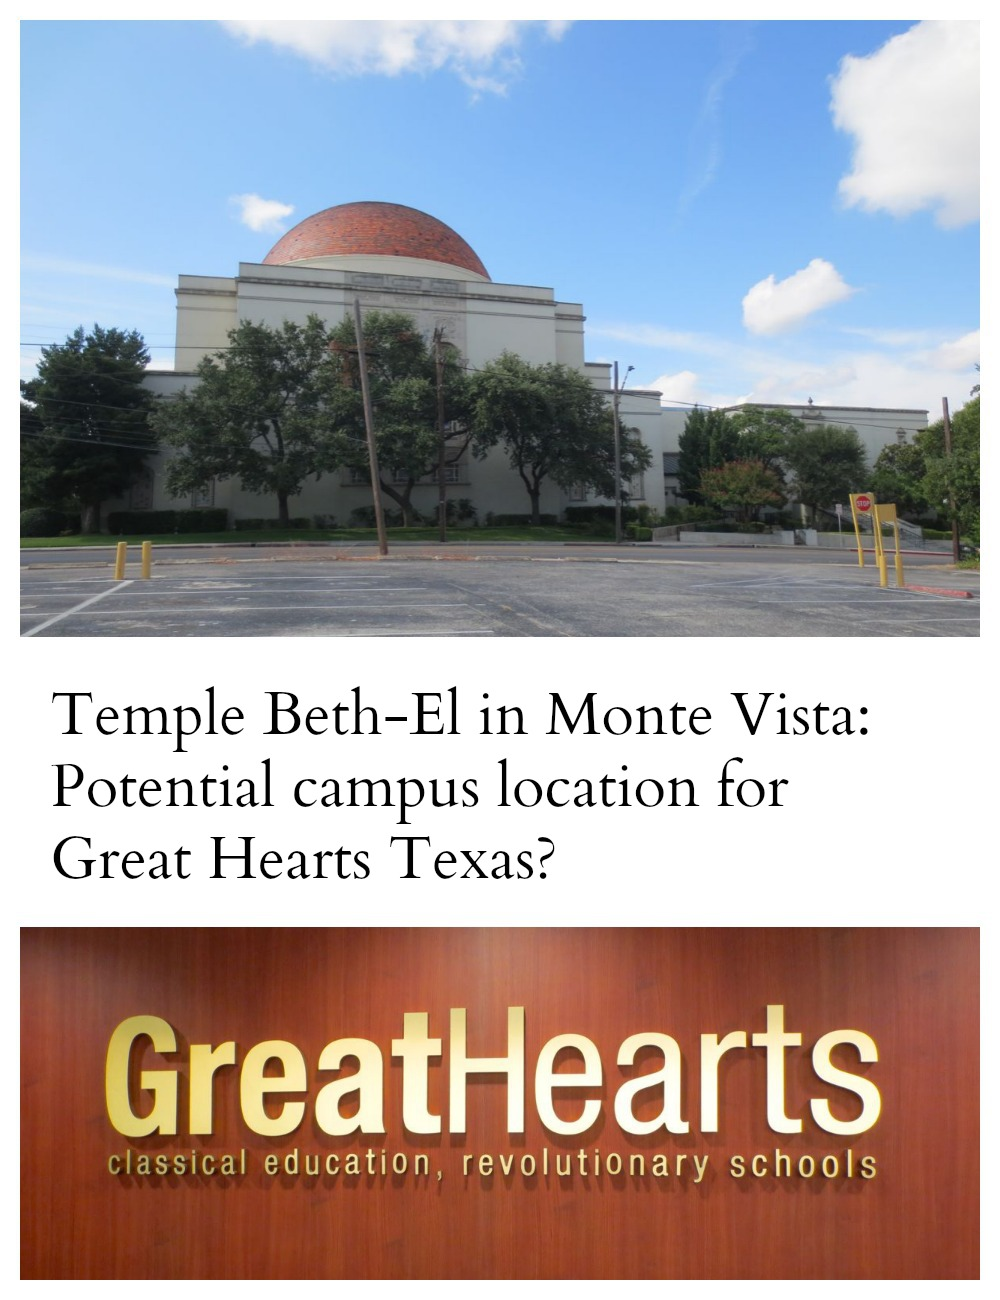 Temple Beth El Board To Vote On Great Hearts Lease At